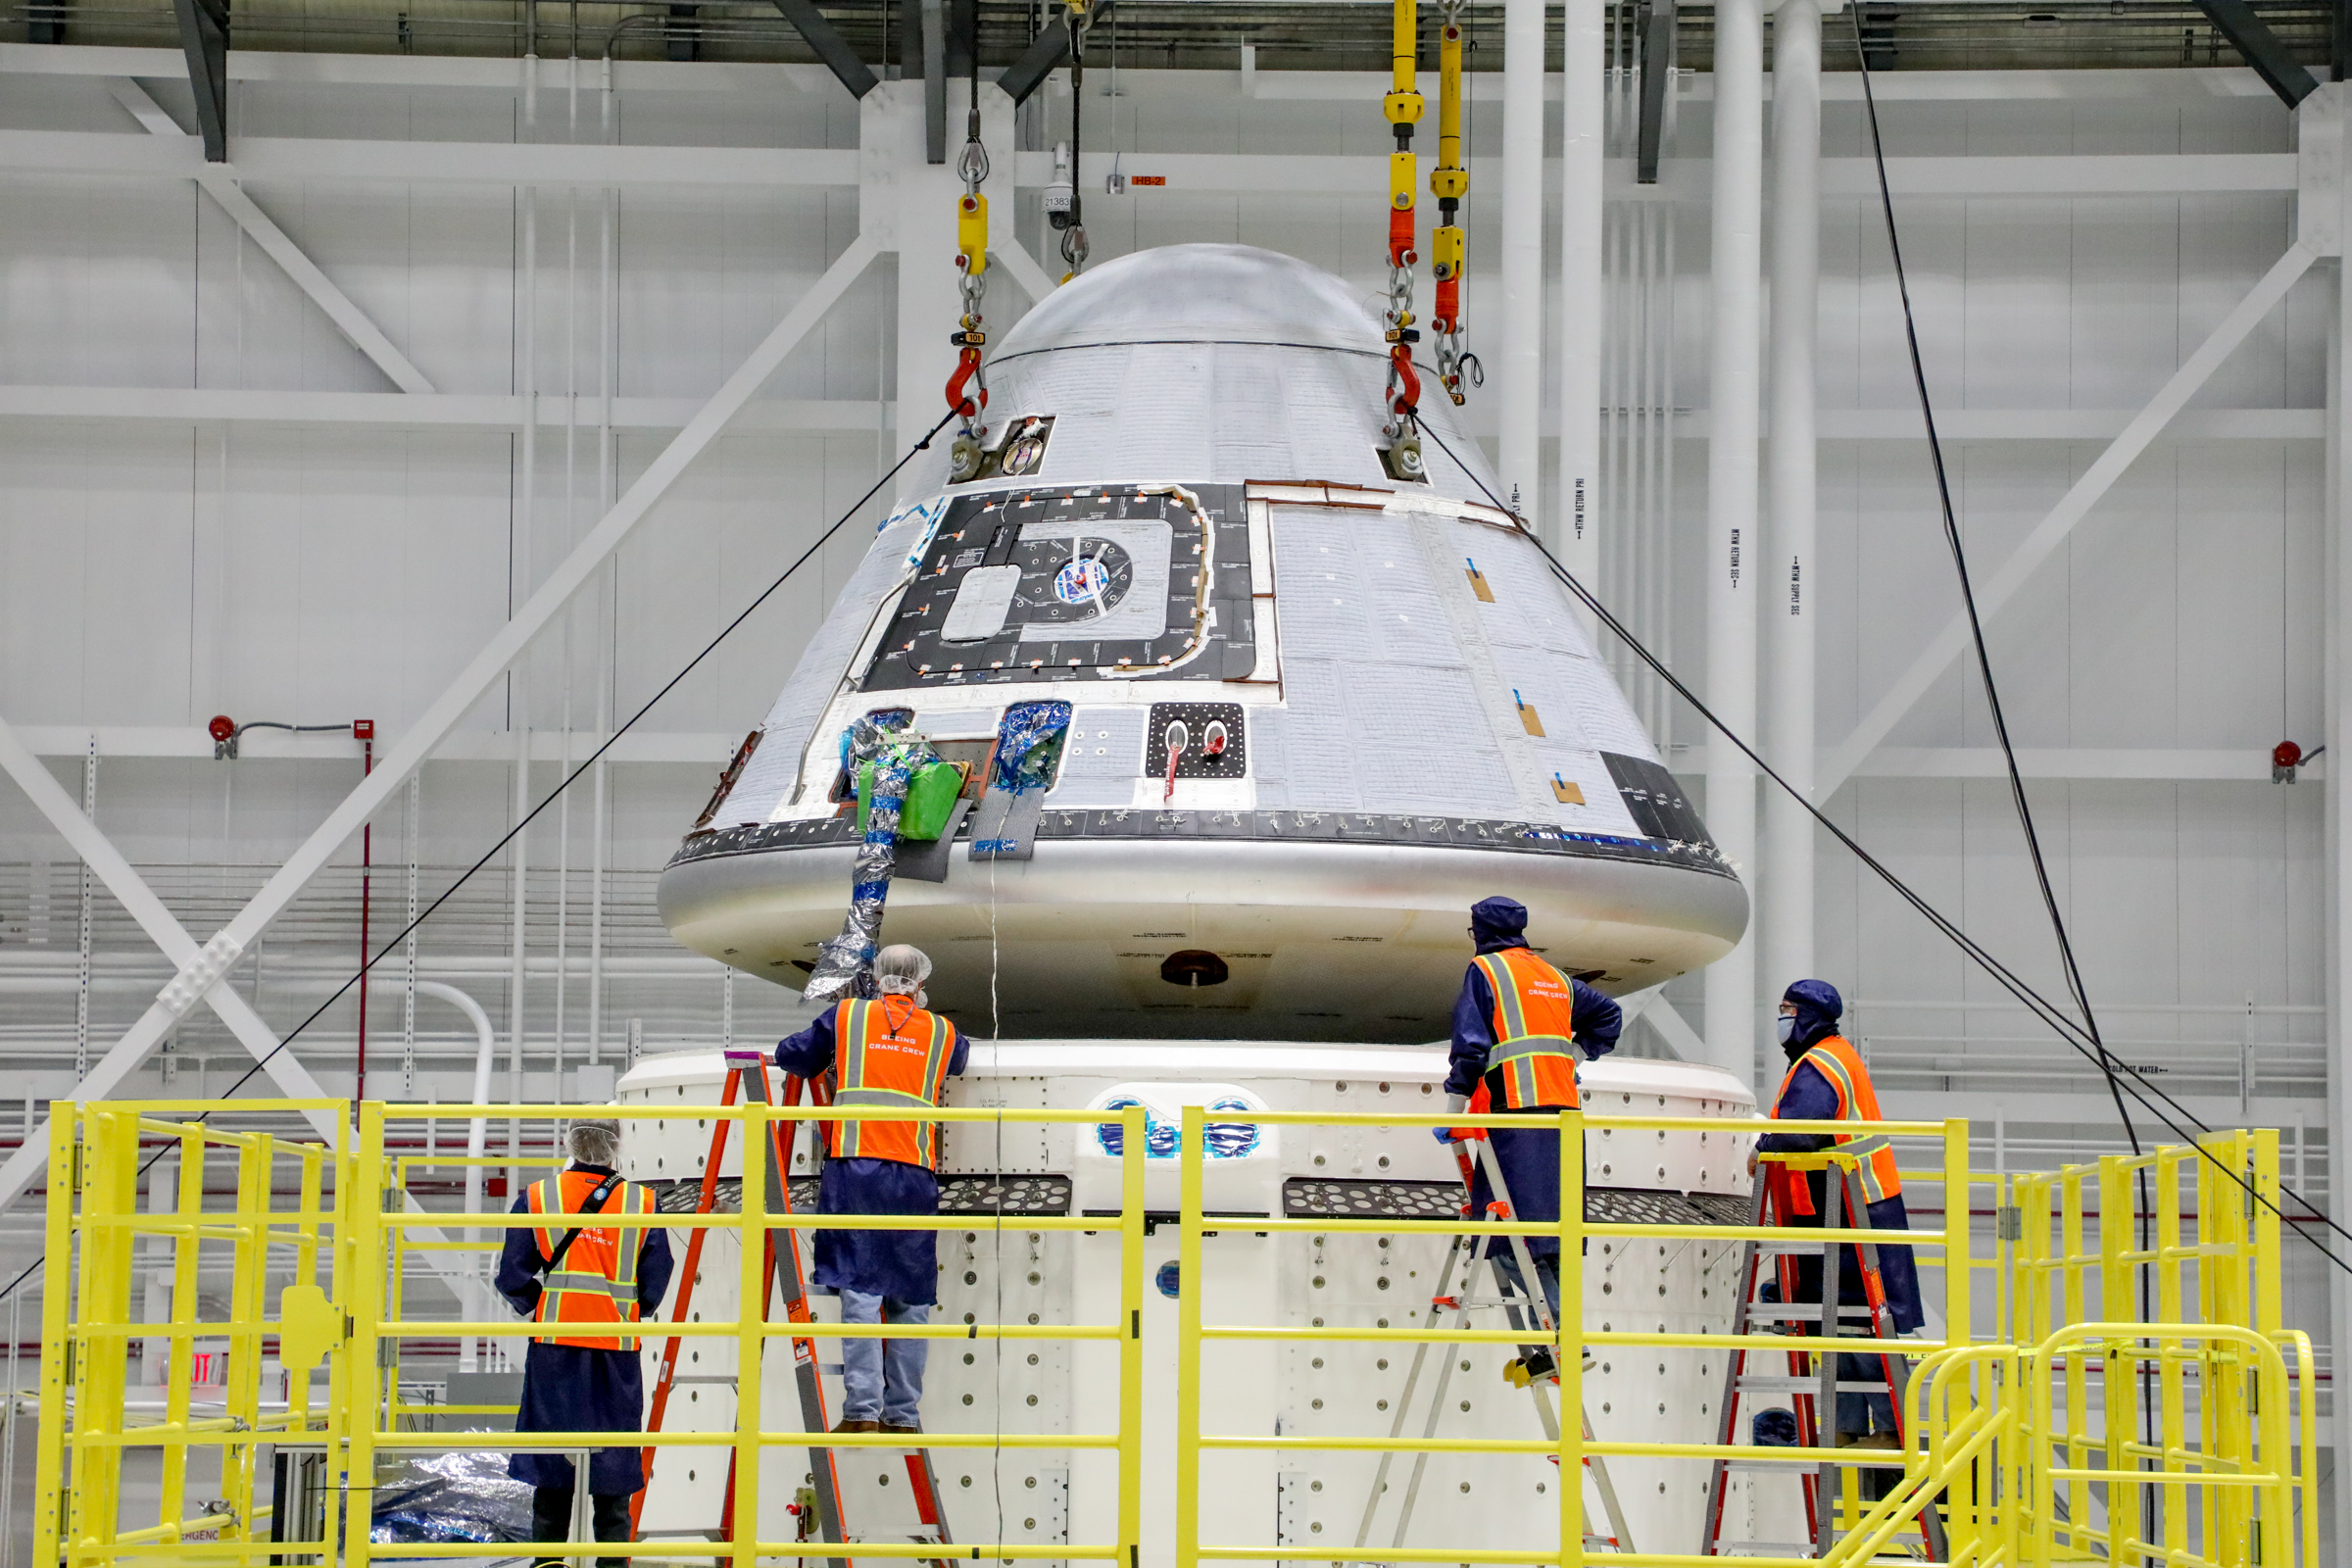 Technicians observe Boeing's Starliner crew module being placed on top of the service module in the Commercial Crew and Cargo Processing Facility at NASA's Kennedy Space Center in Florida on Jan. 14, 2021.